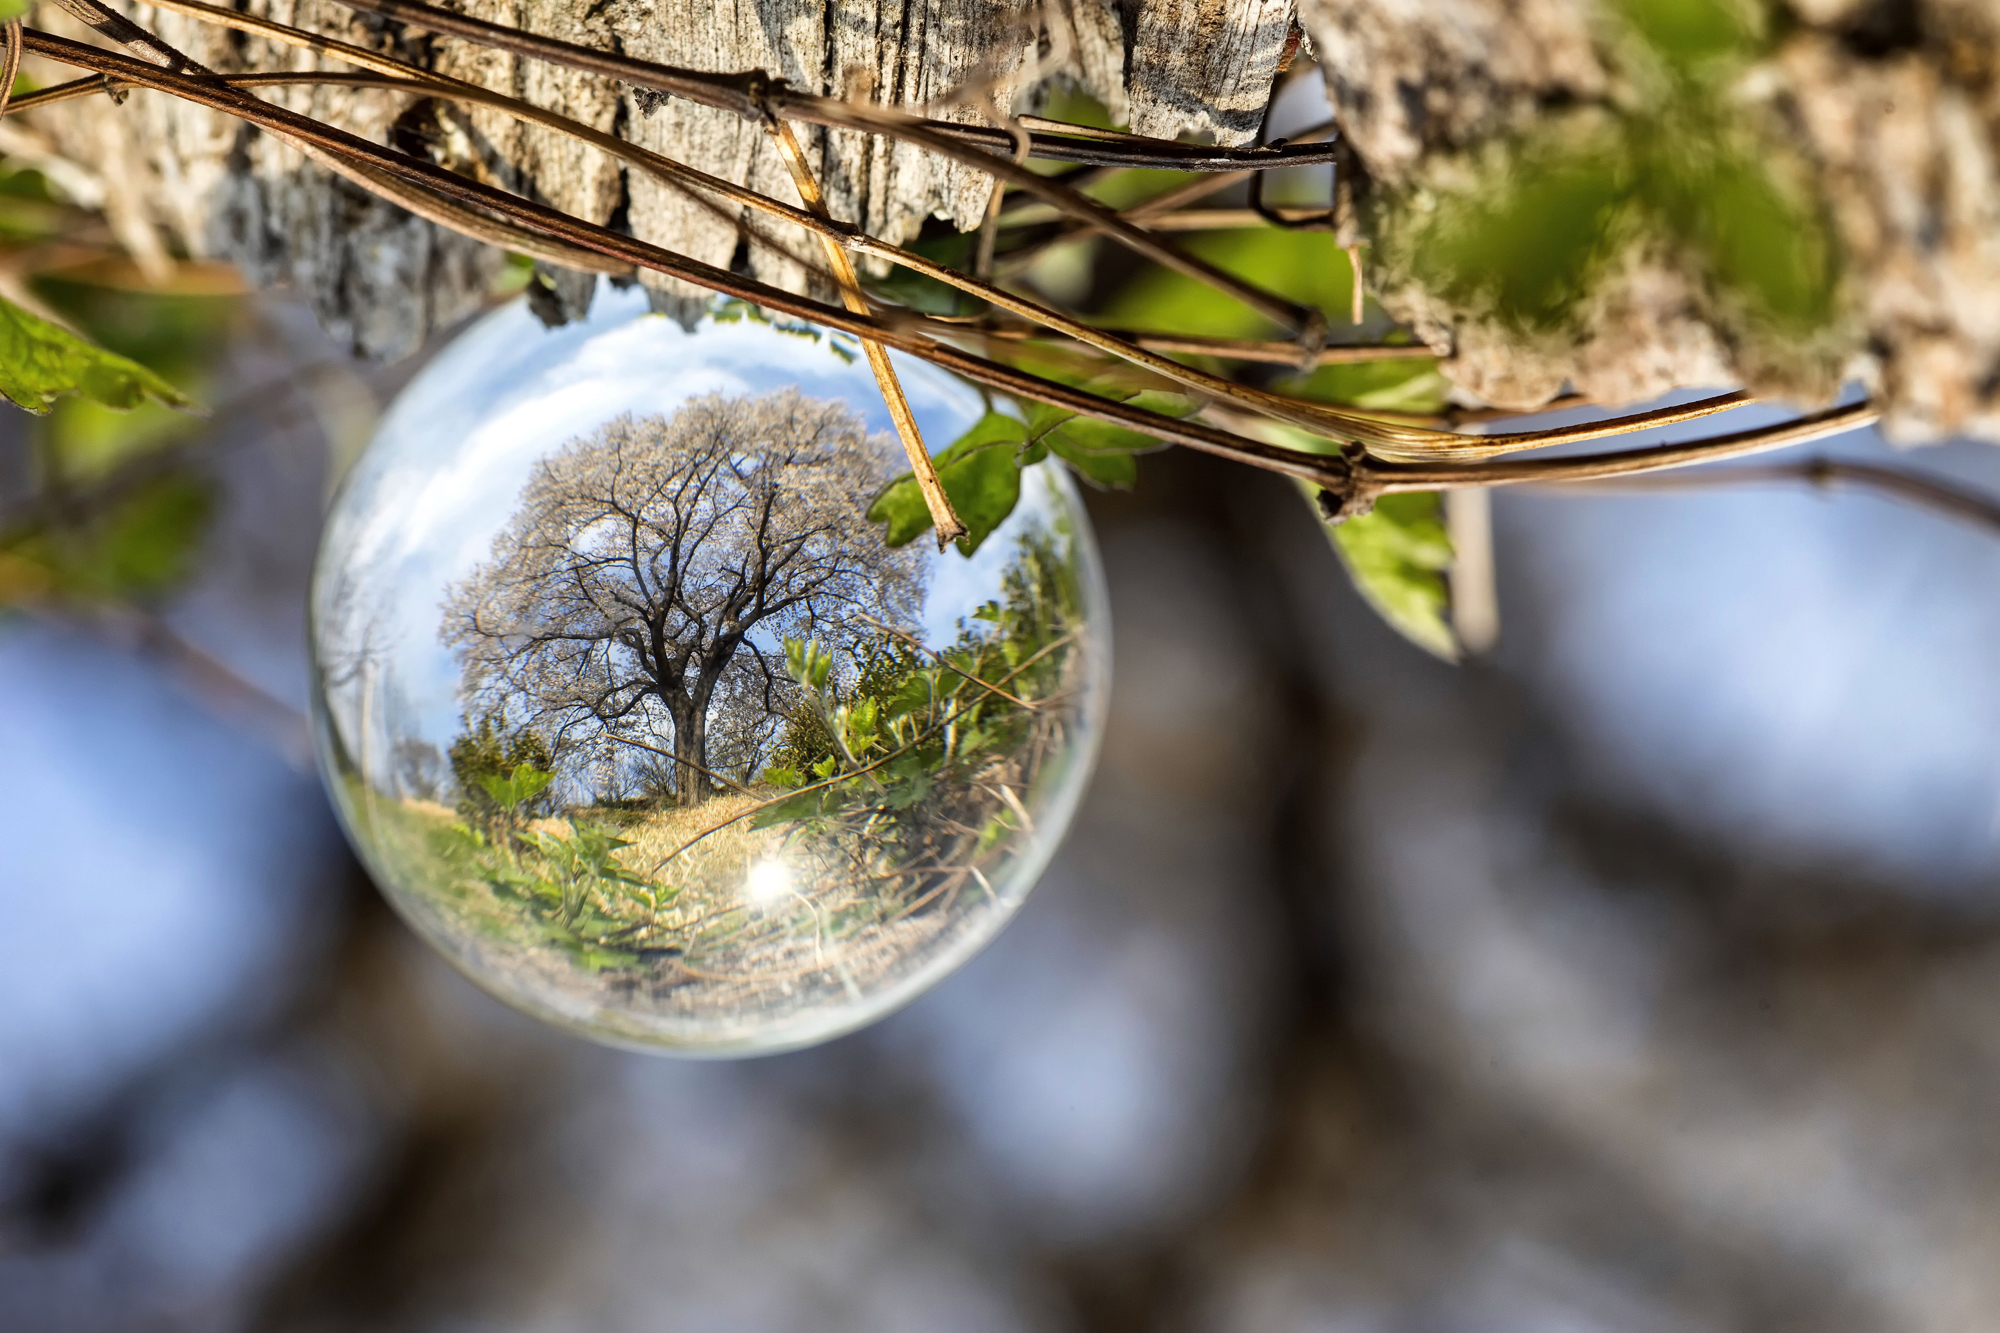 9 Great Lensball Perspectives For Creative Photography